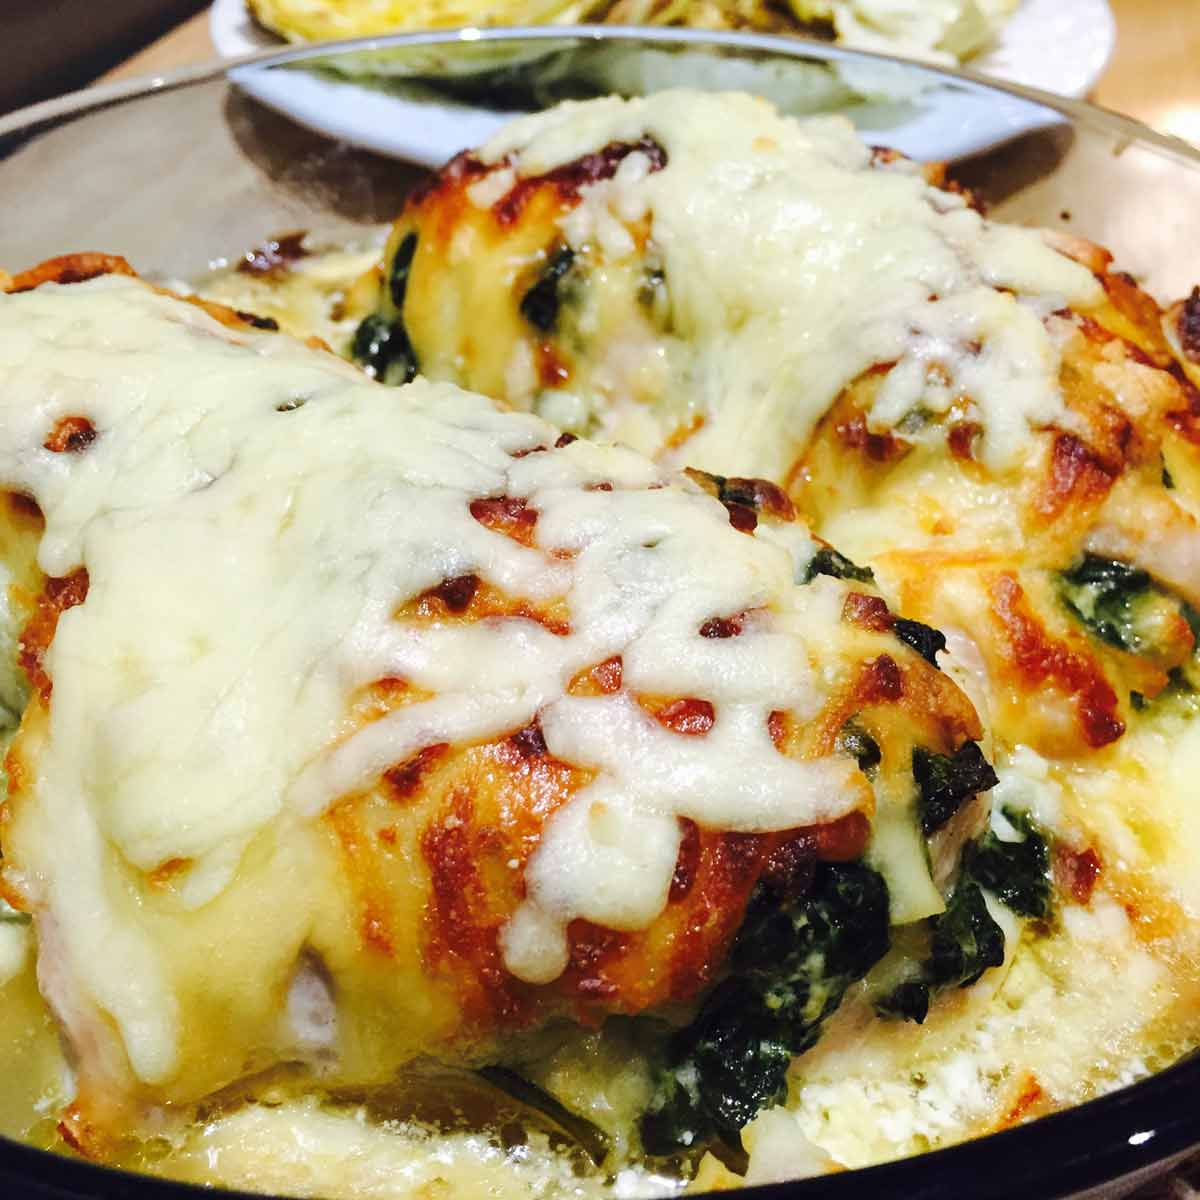 Spinach & mushrooms stuffed chicken breast